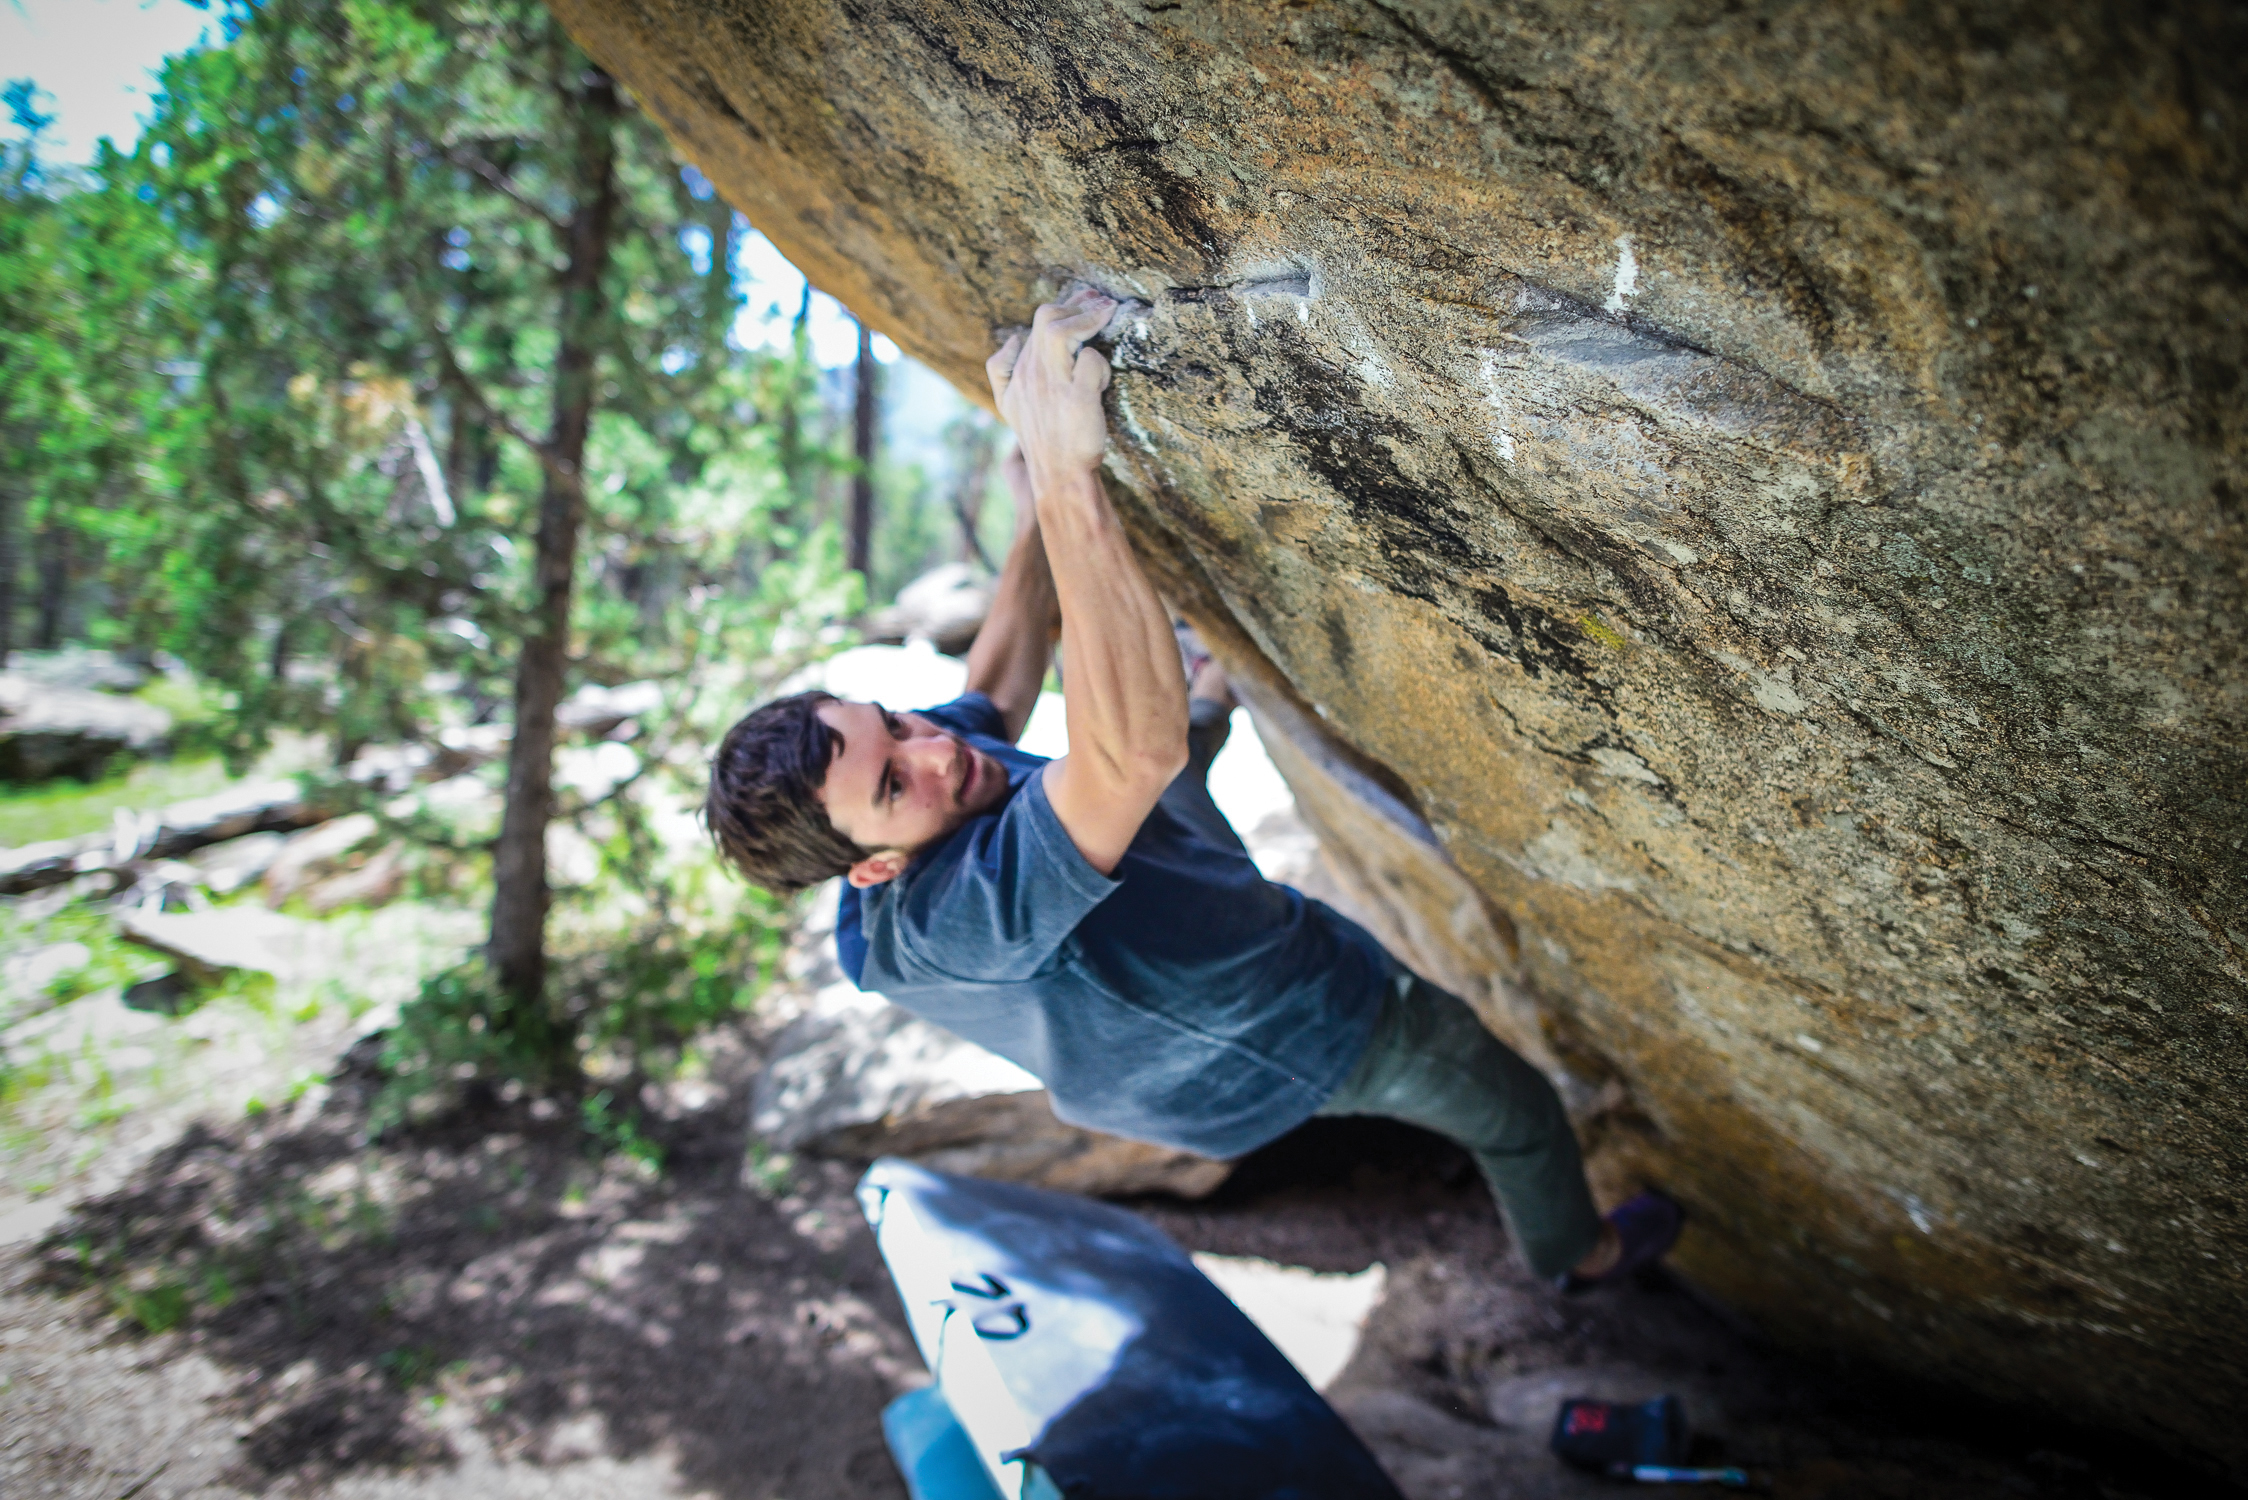 Tyler Landman '13, a world-class climber, finds bouldering a creative problem-solving process that taught him a scientific way of thinking.